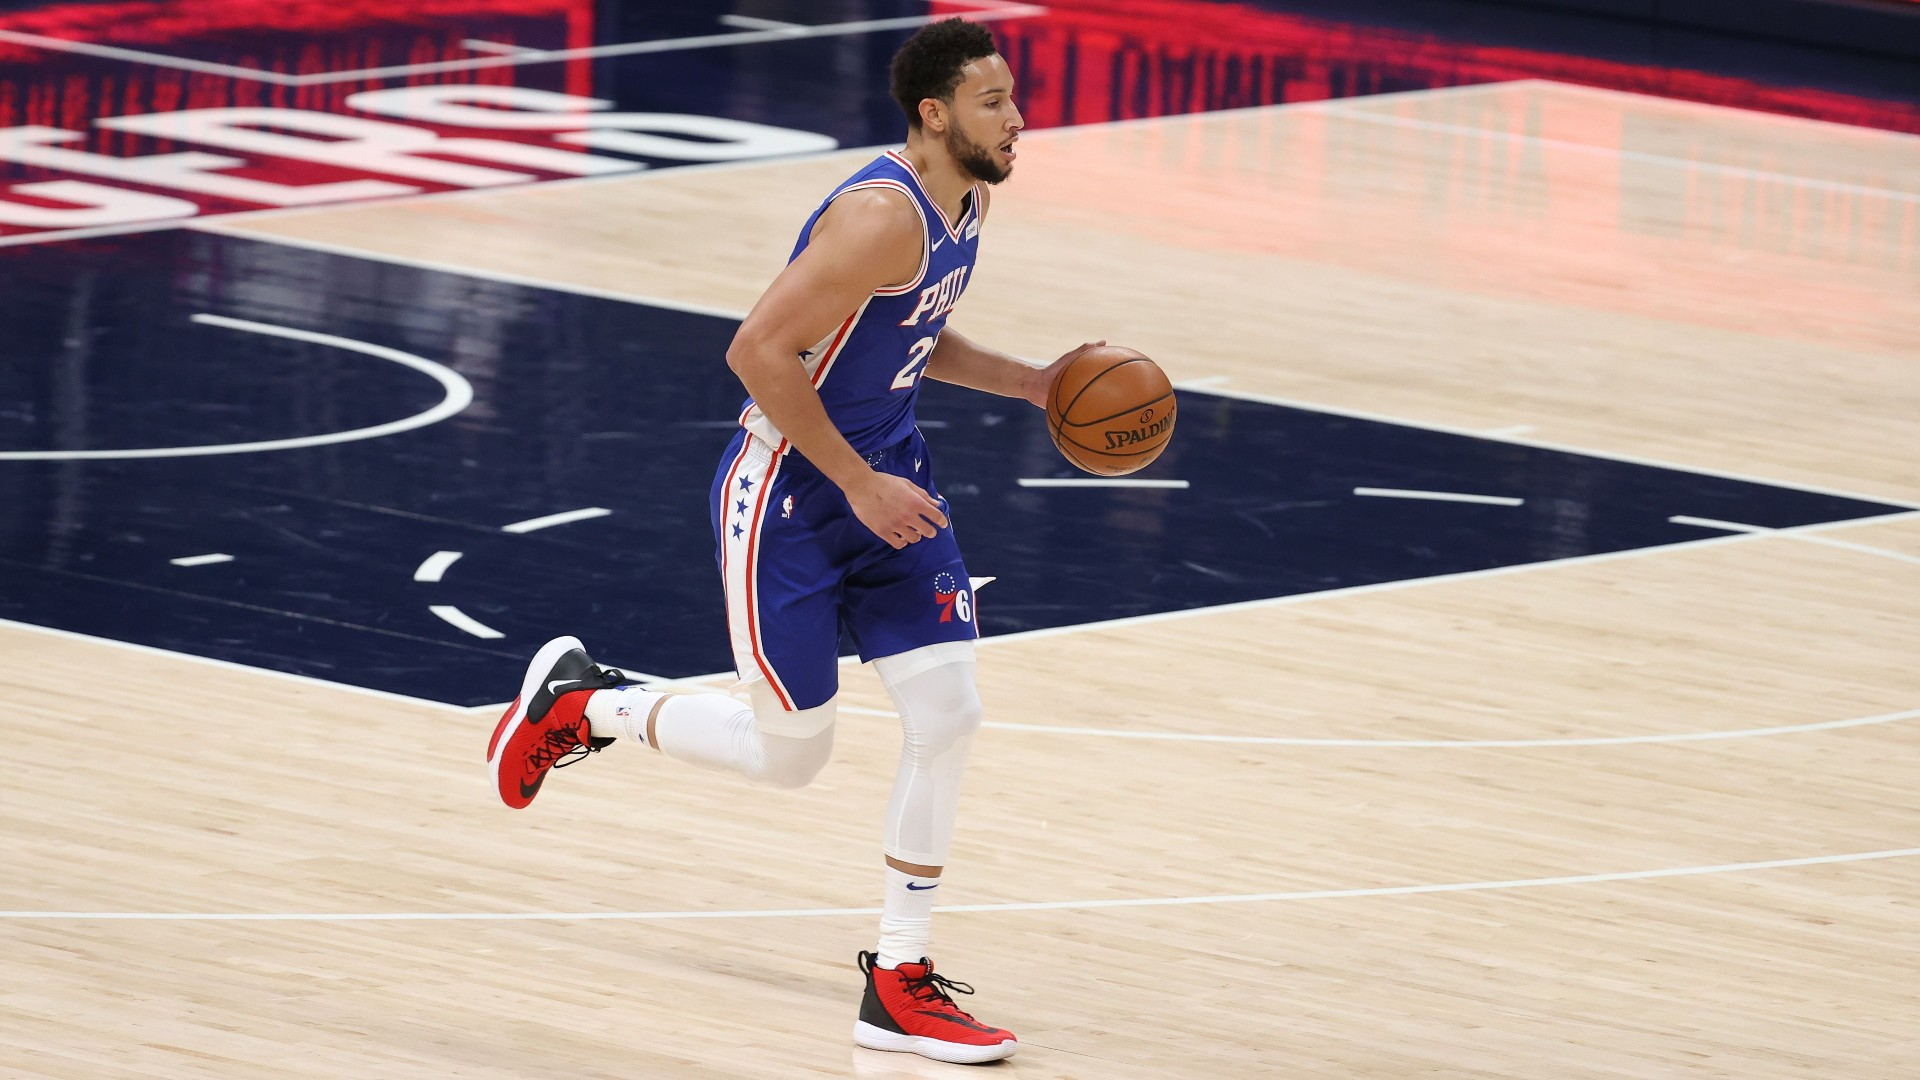 James Harden trade rumors: Ben Simmons was on table, but Rockets wanted 'nothing to do' with Kyrie Irving